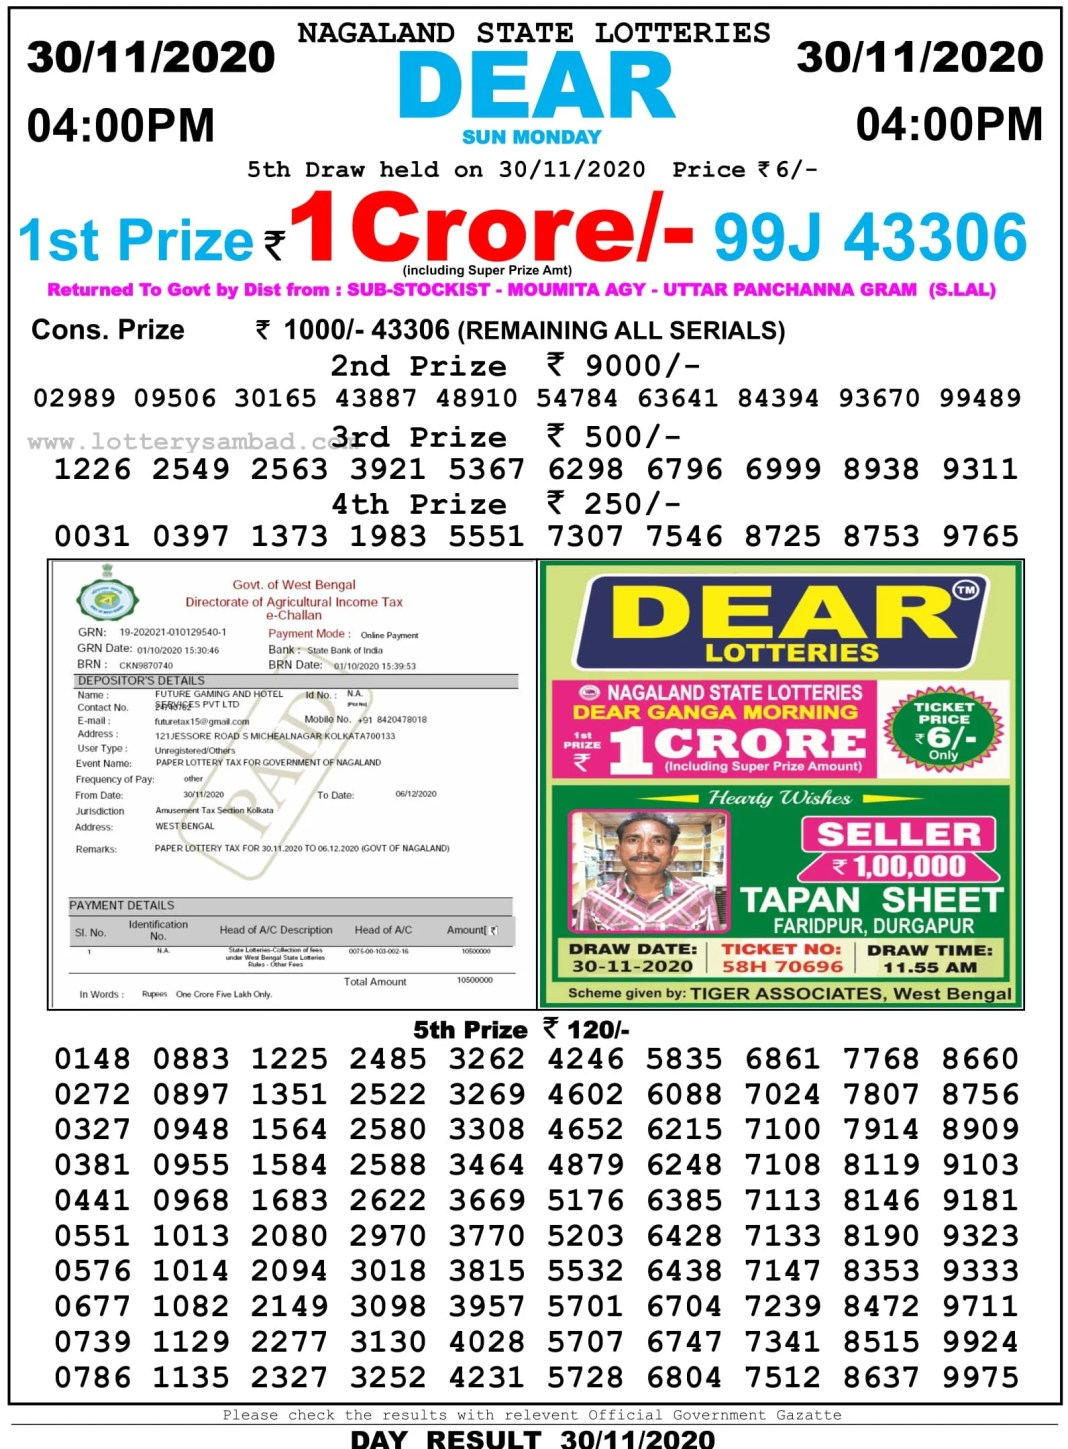 Nagaland State Lottery Result 4 PM 30.11.2020